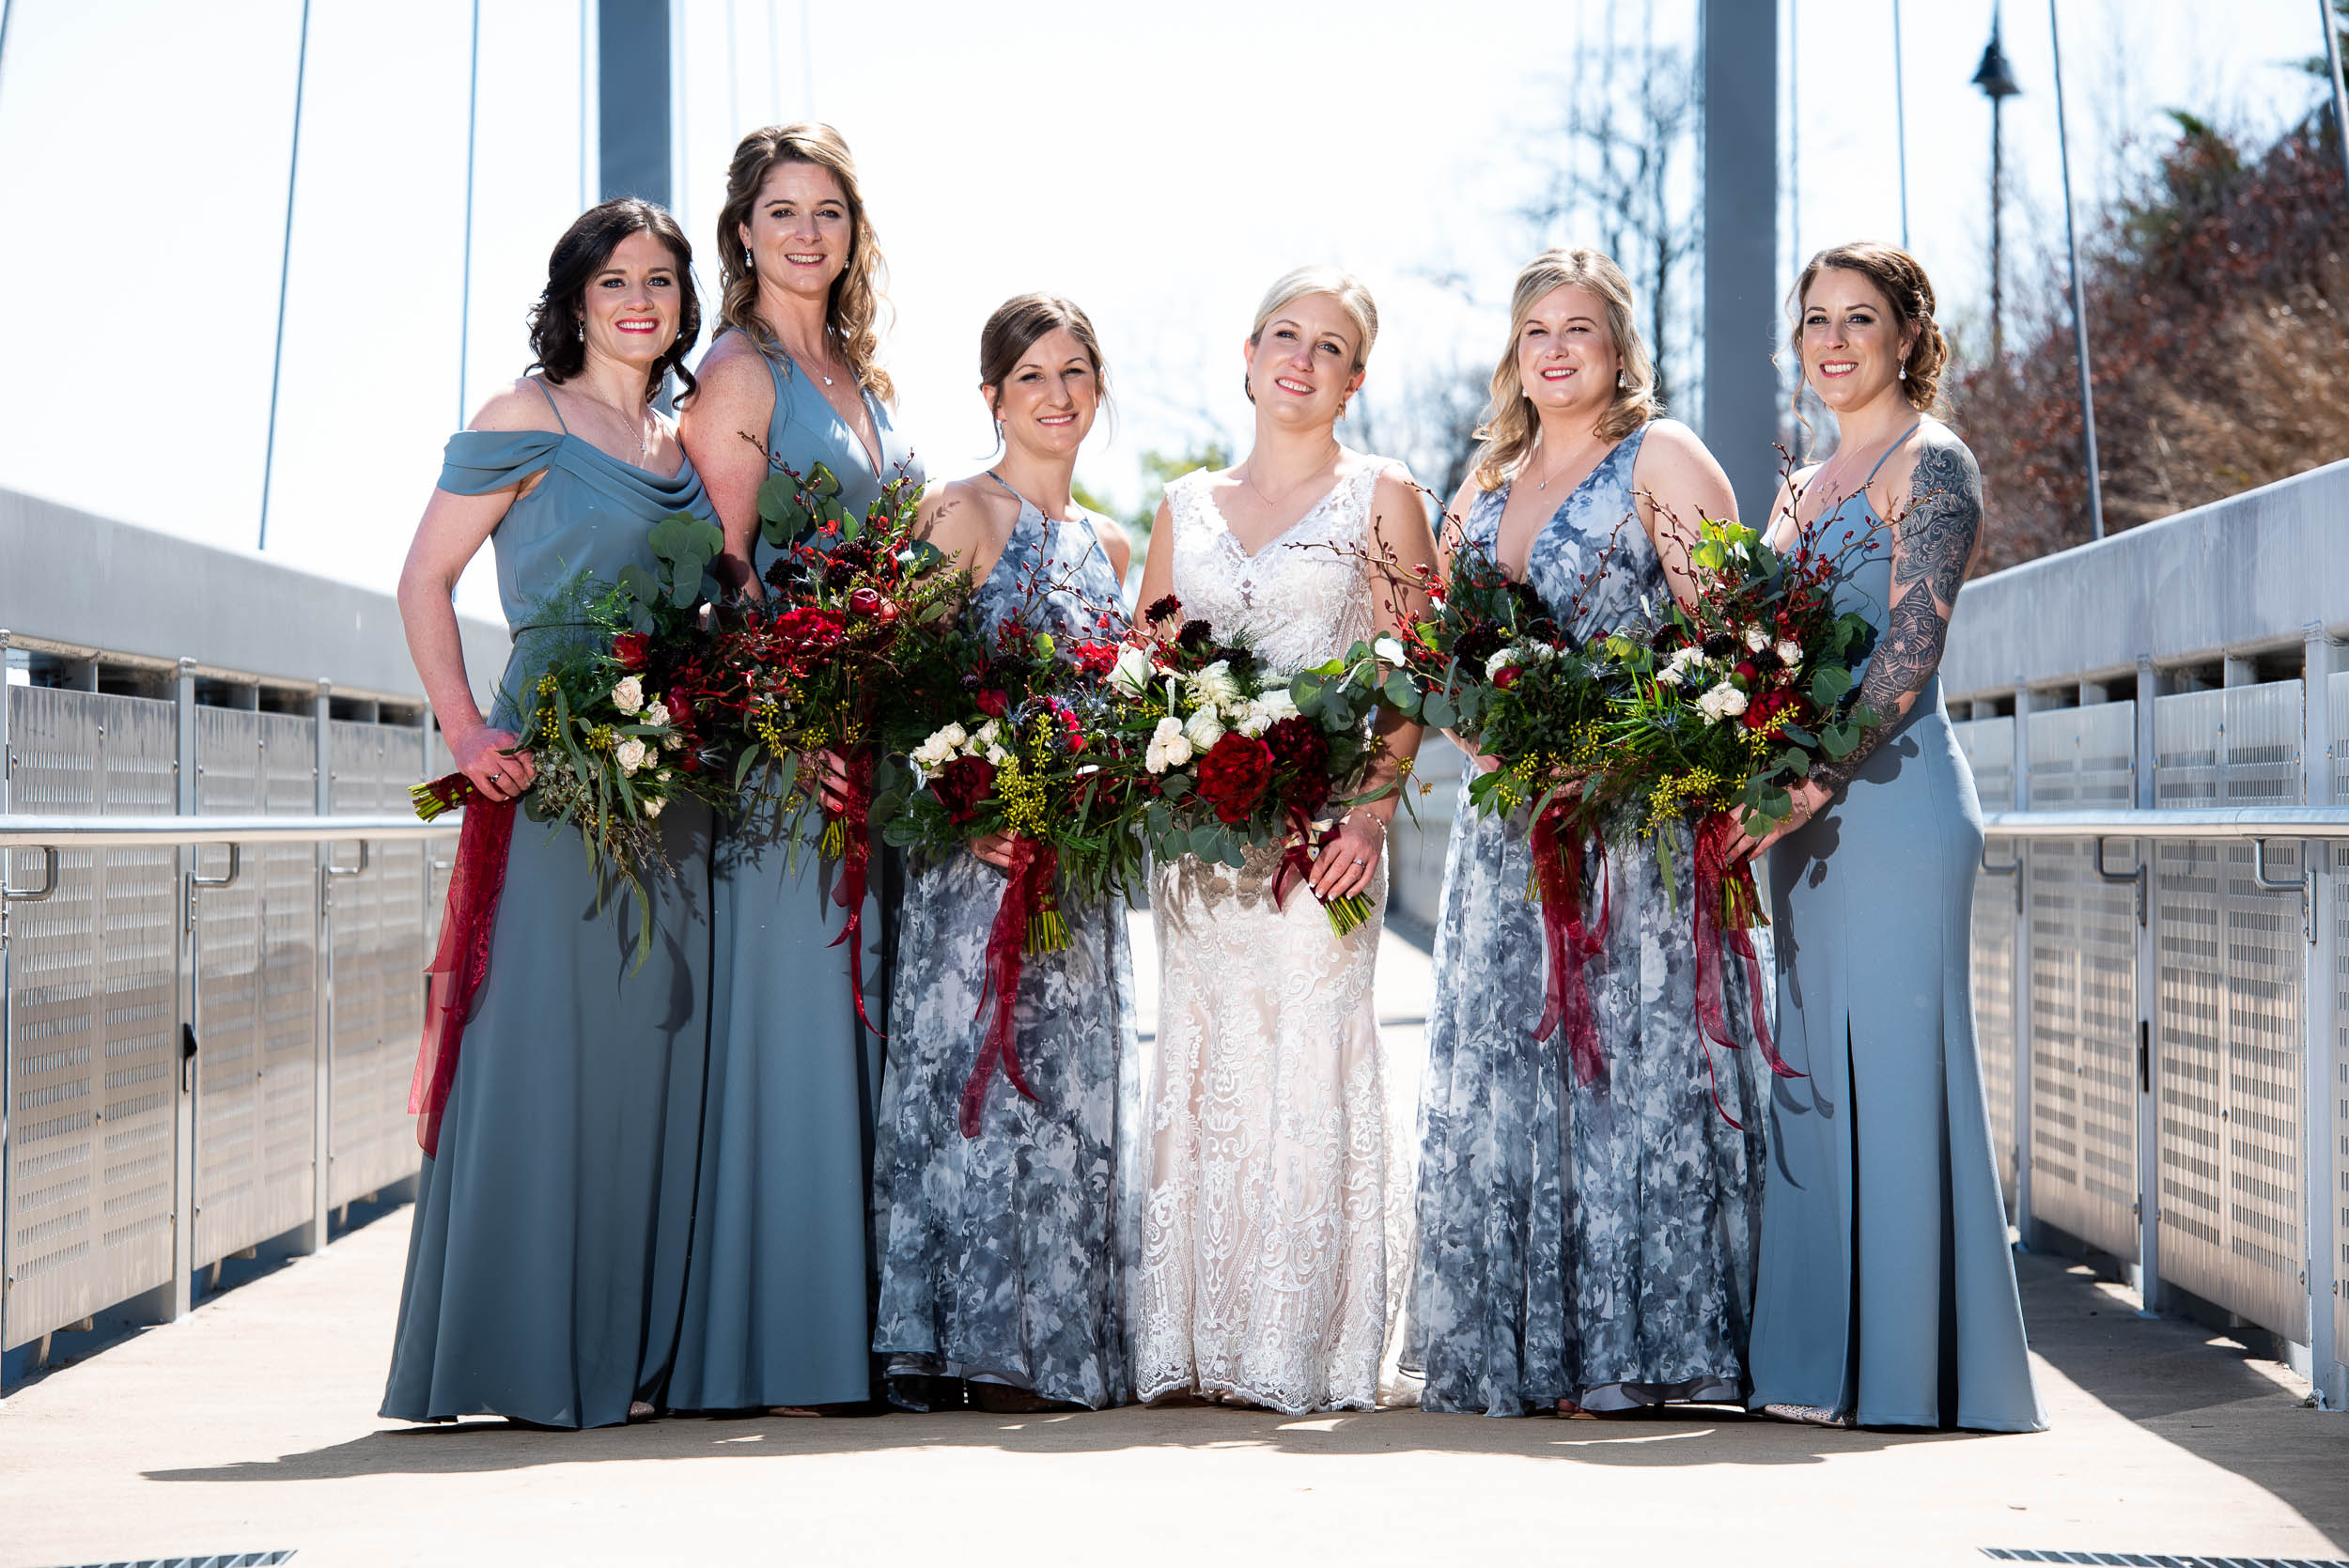 Blue bridesmaids dresses: Modern industrial Chicago wedding inside Prairie Street Brewhouse captured by J. Brown Photography. Find more wedding ideas at jbrownphotography.com!